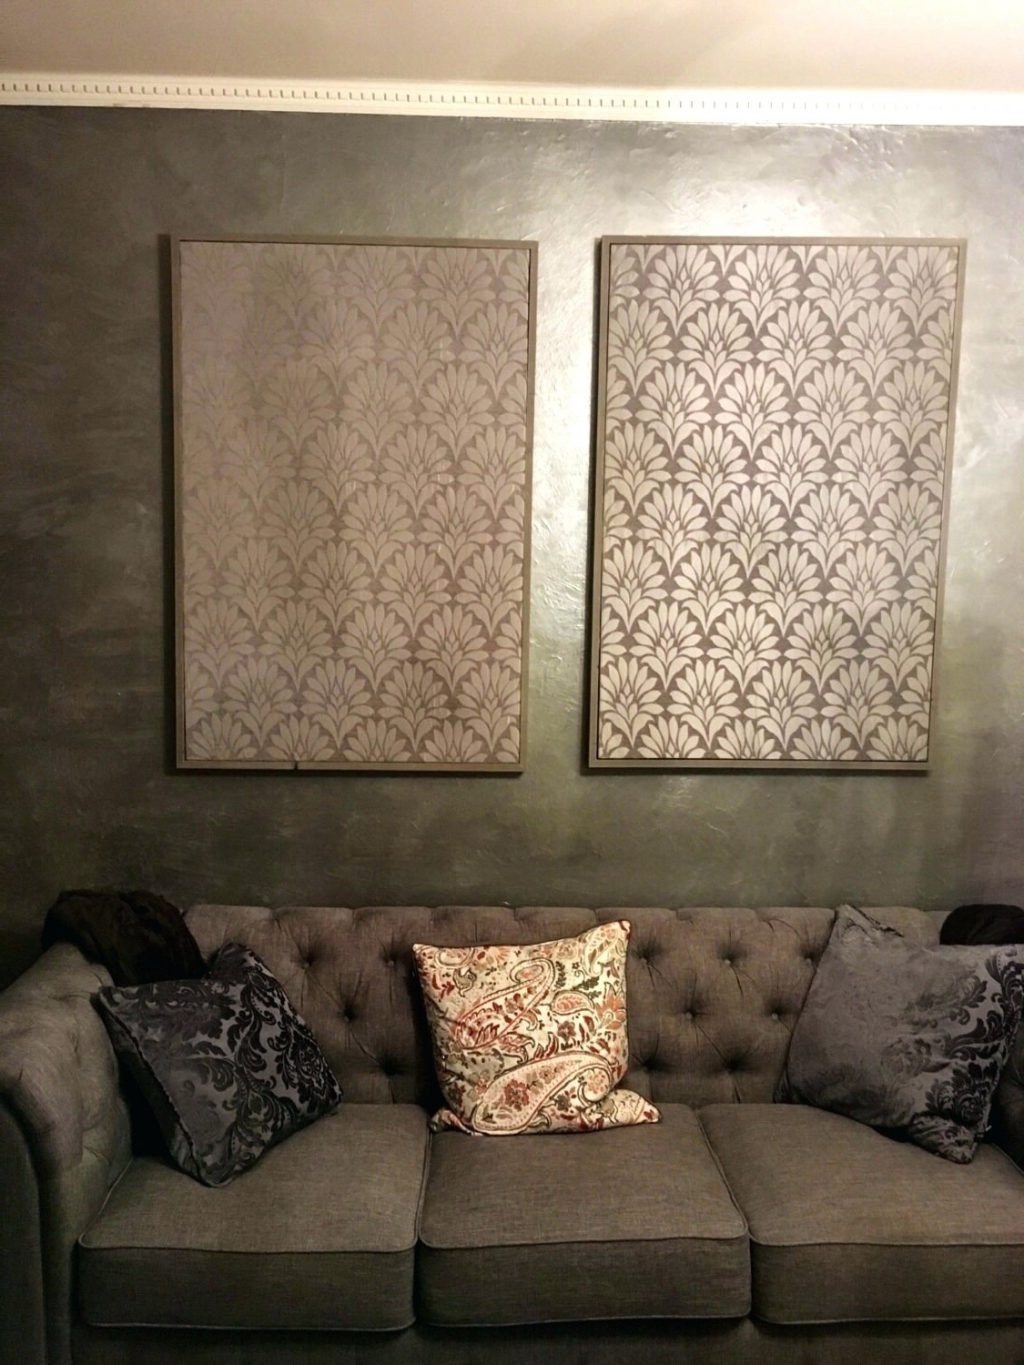 Fabric Wall Art For Well Known Wall Arts ~ Fabric For Wall Art Hangings Fabric Art Wall Hangings (View 5 of 15)